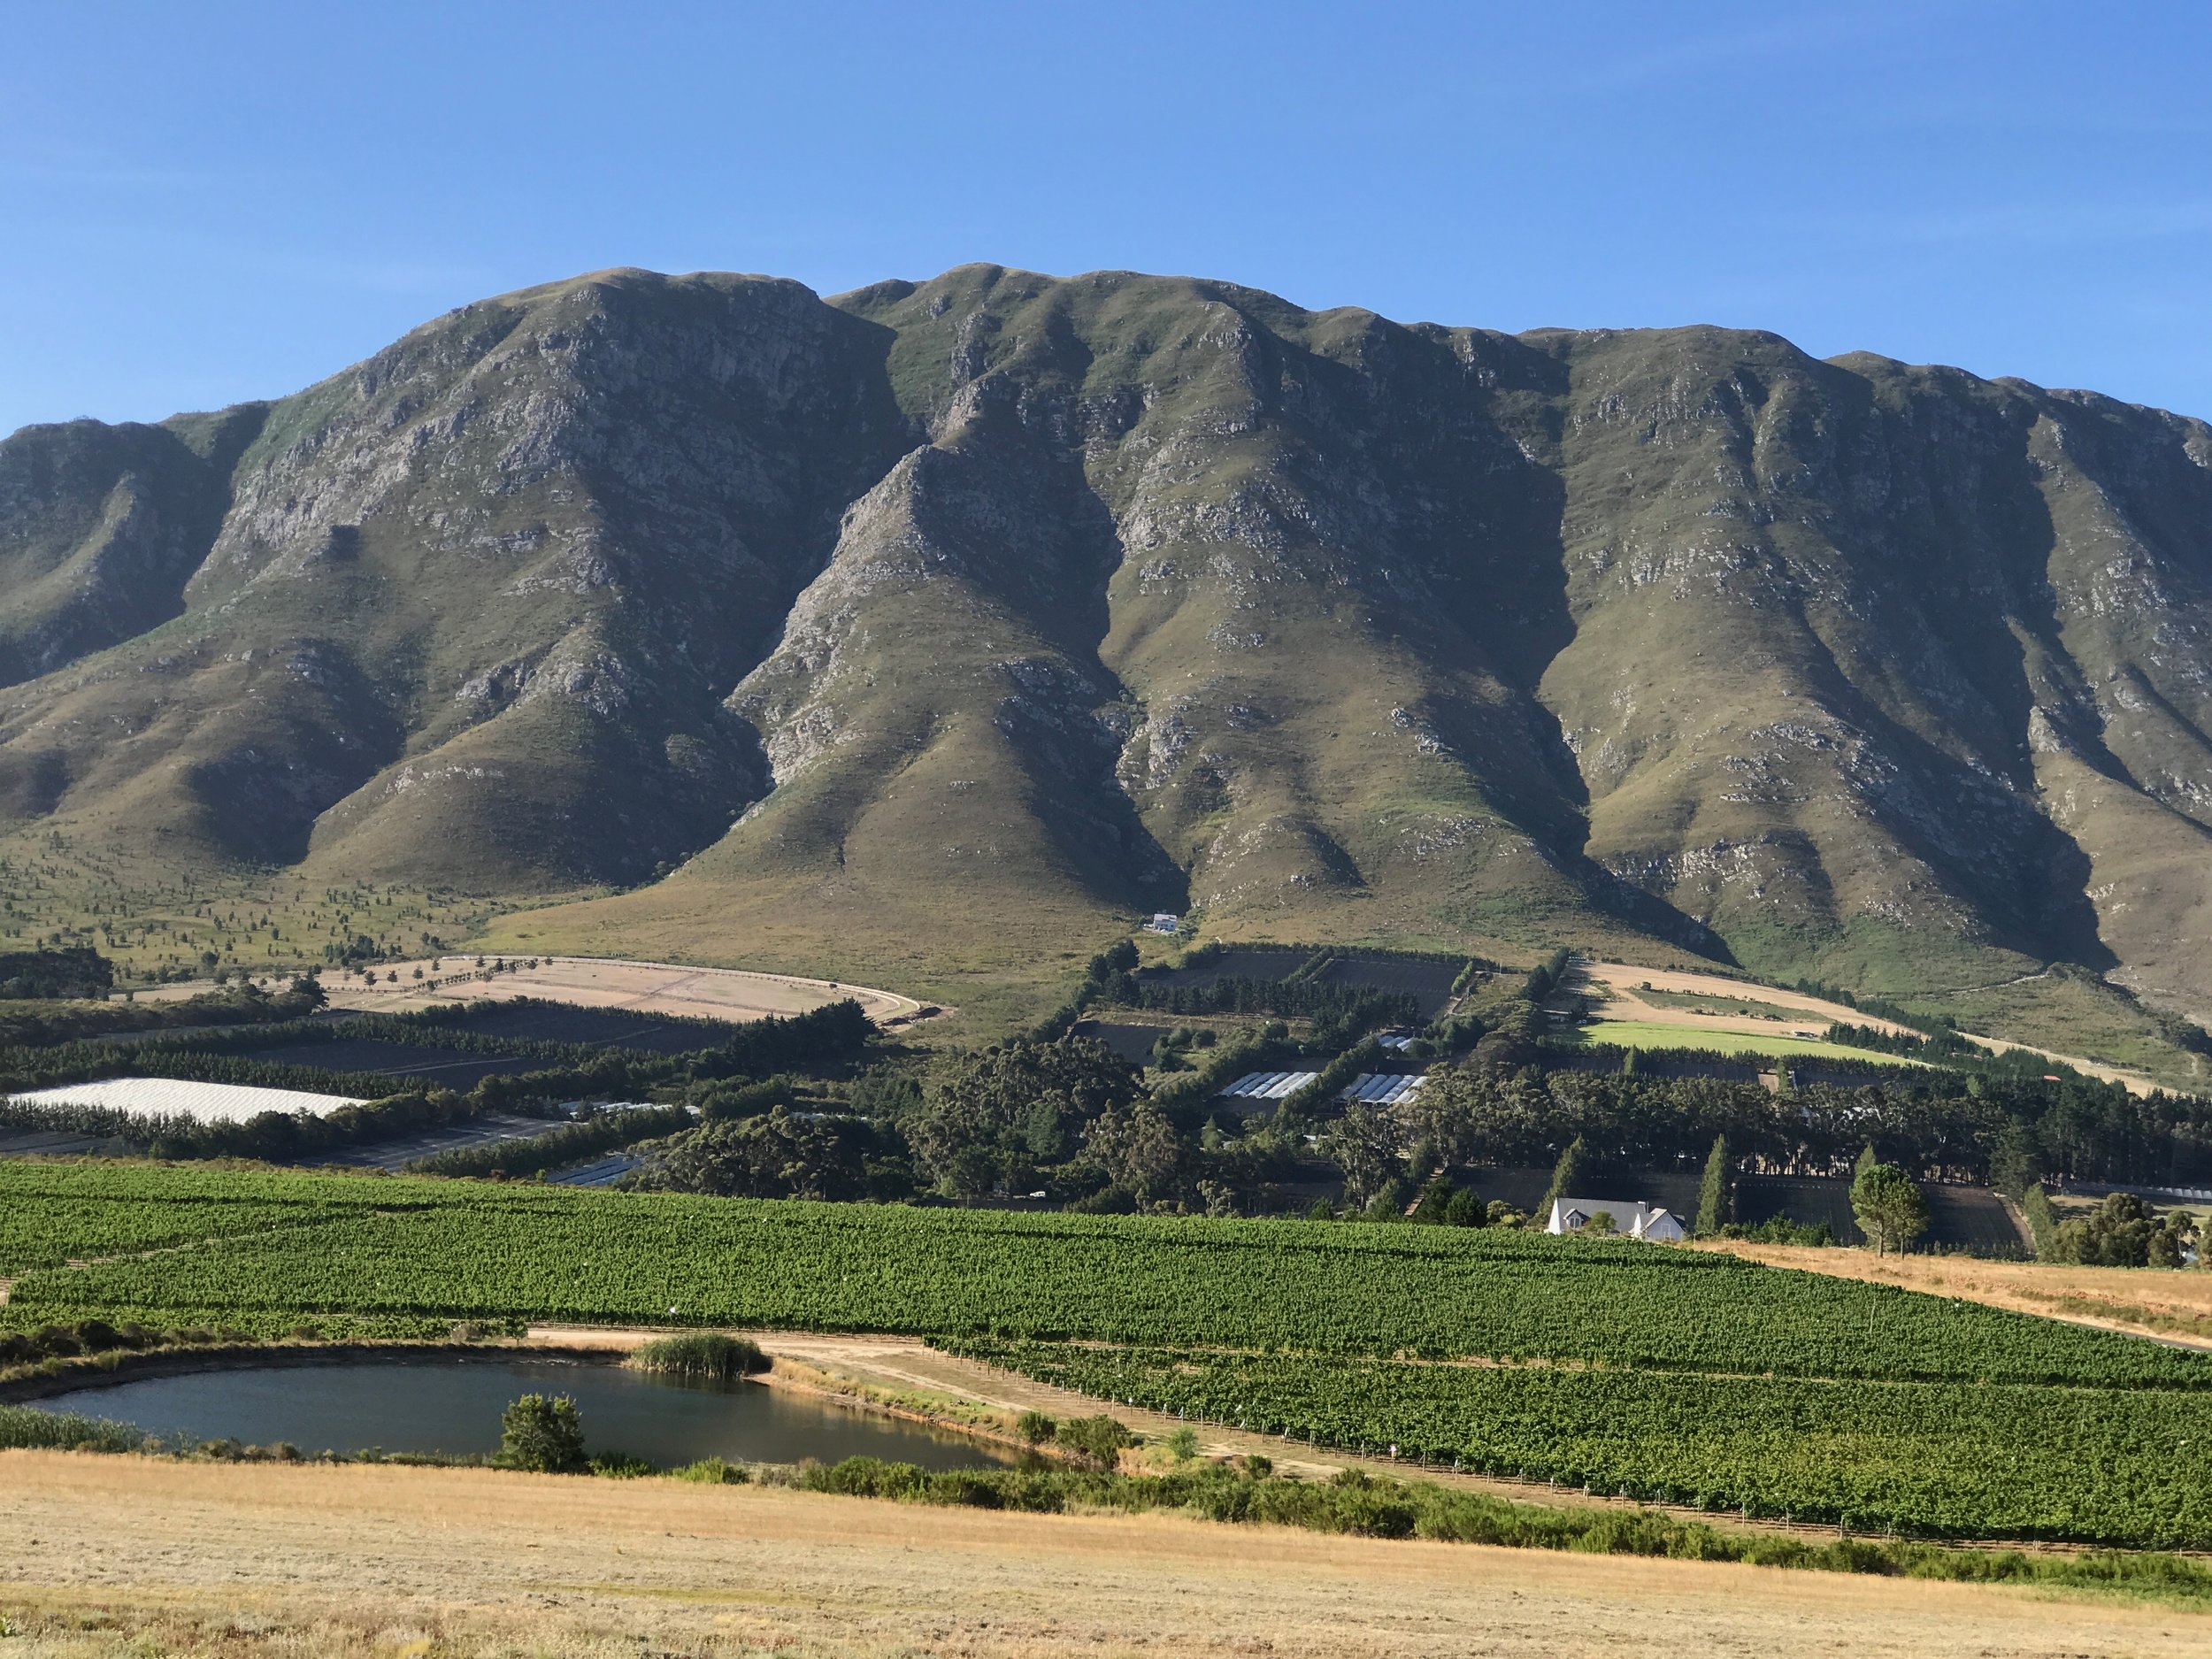 The Overberg